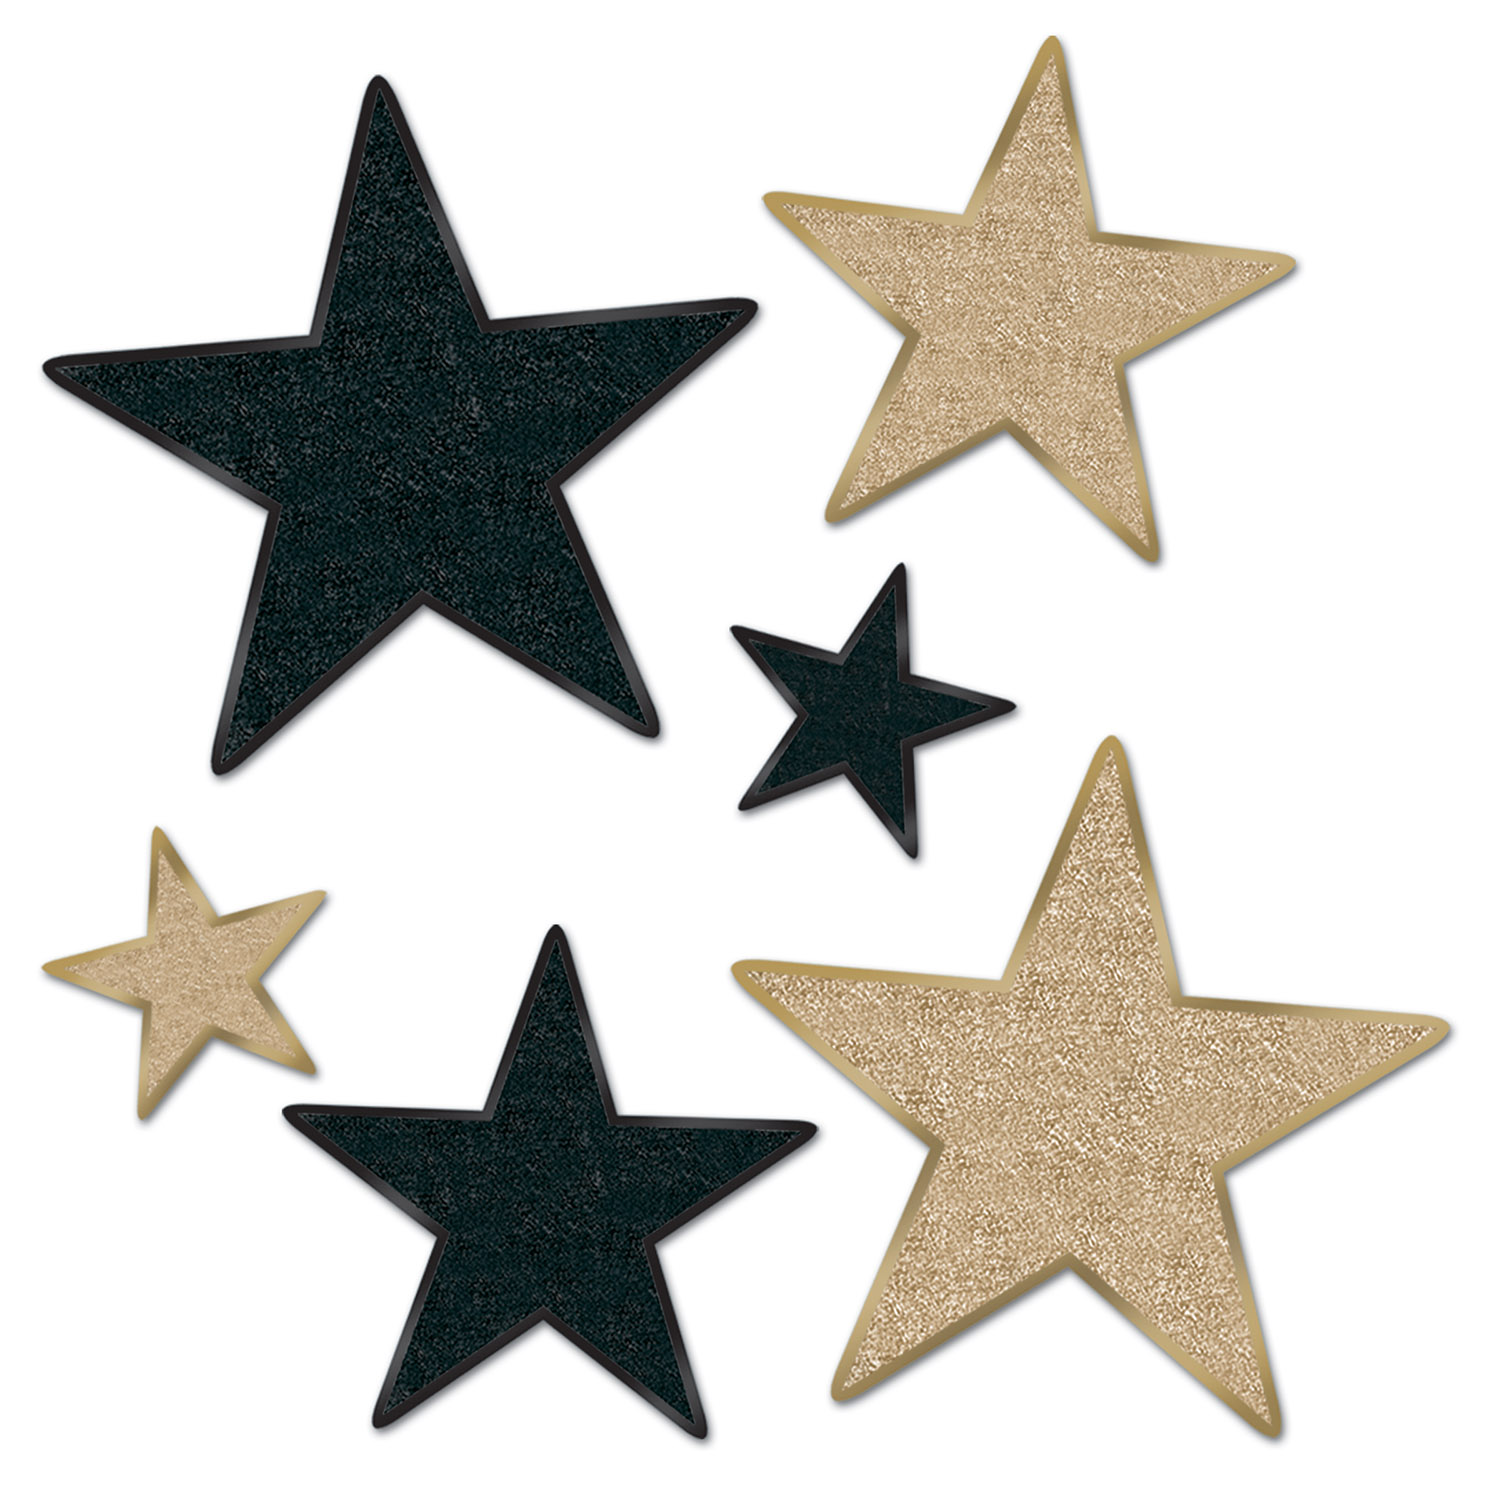 Glittered Star Cutouts Asstd asstd black & gold